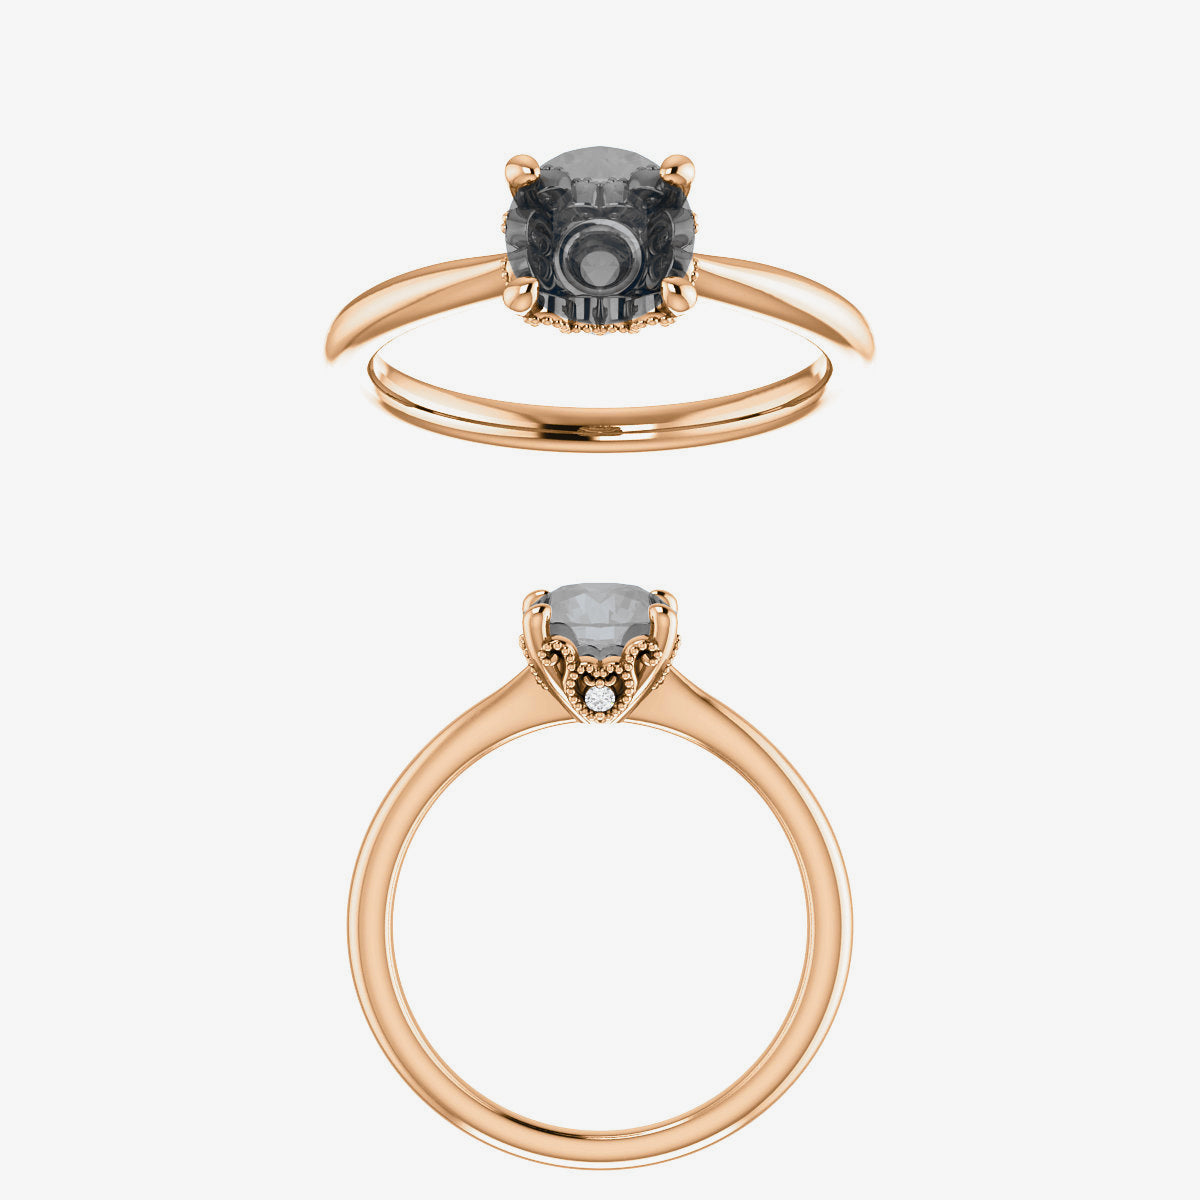 Lark setting - Salt & Pepper Celestial Diamond Engagement Rings and Wedding Bands  by Midwinter Co.